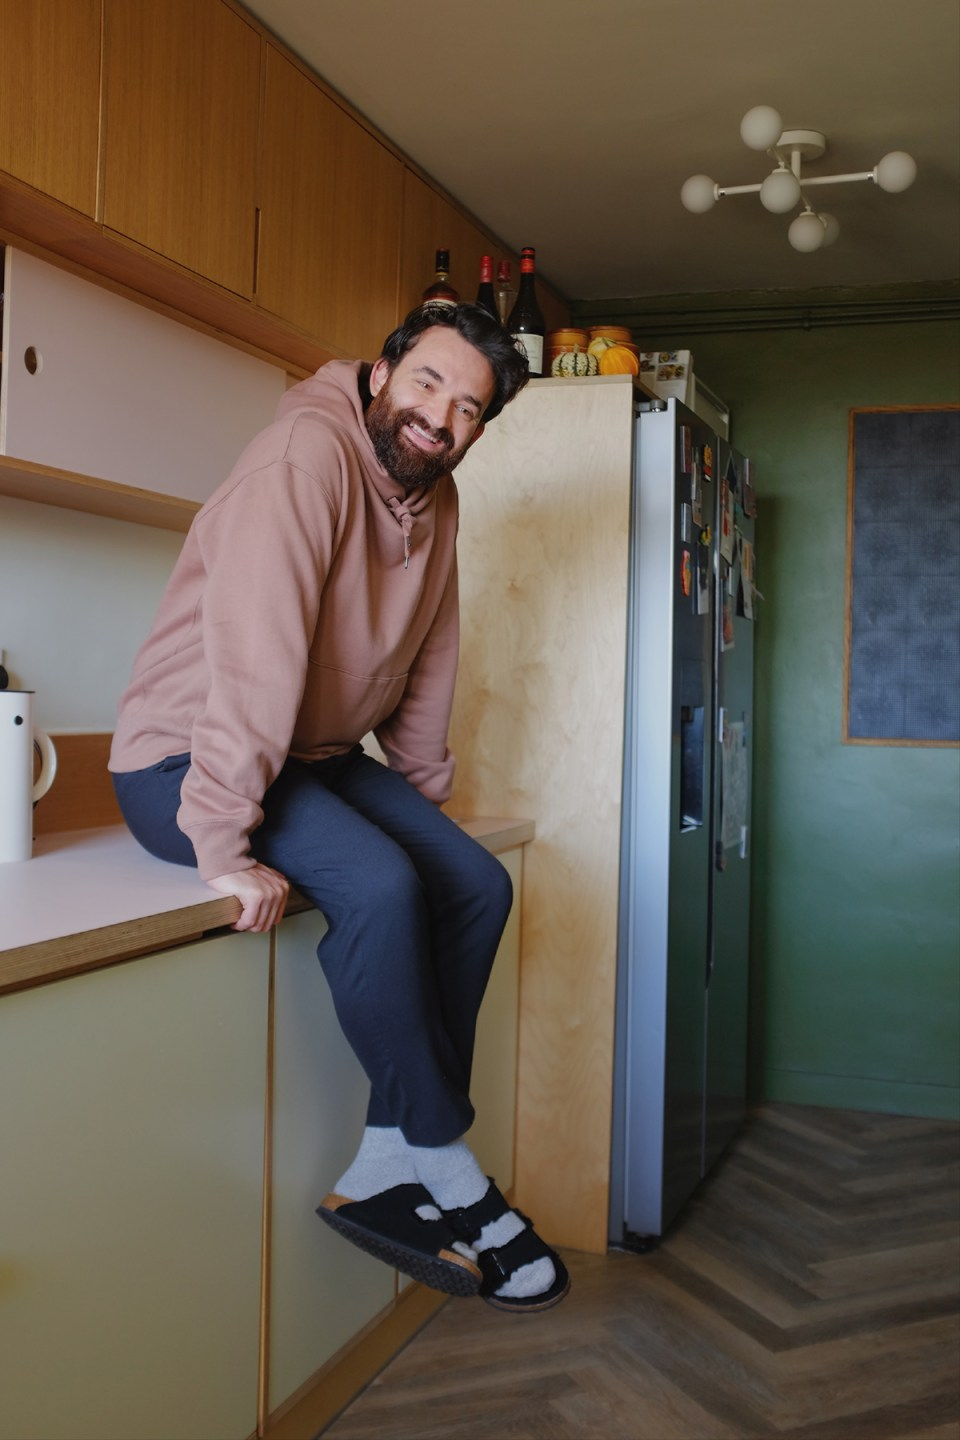 james in pink hoodie and jeans on kitchen countertop